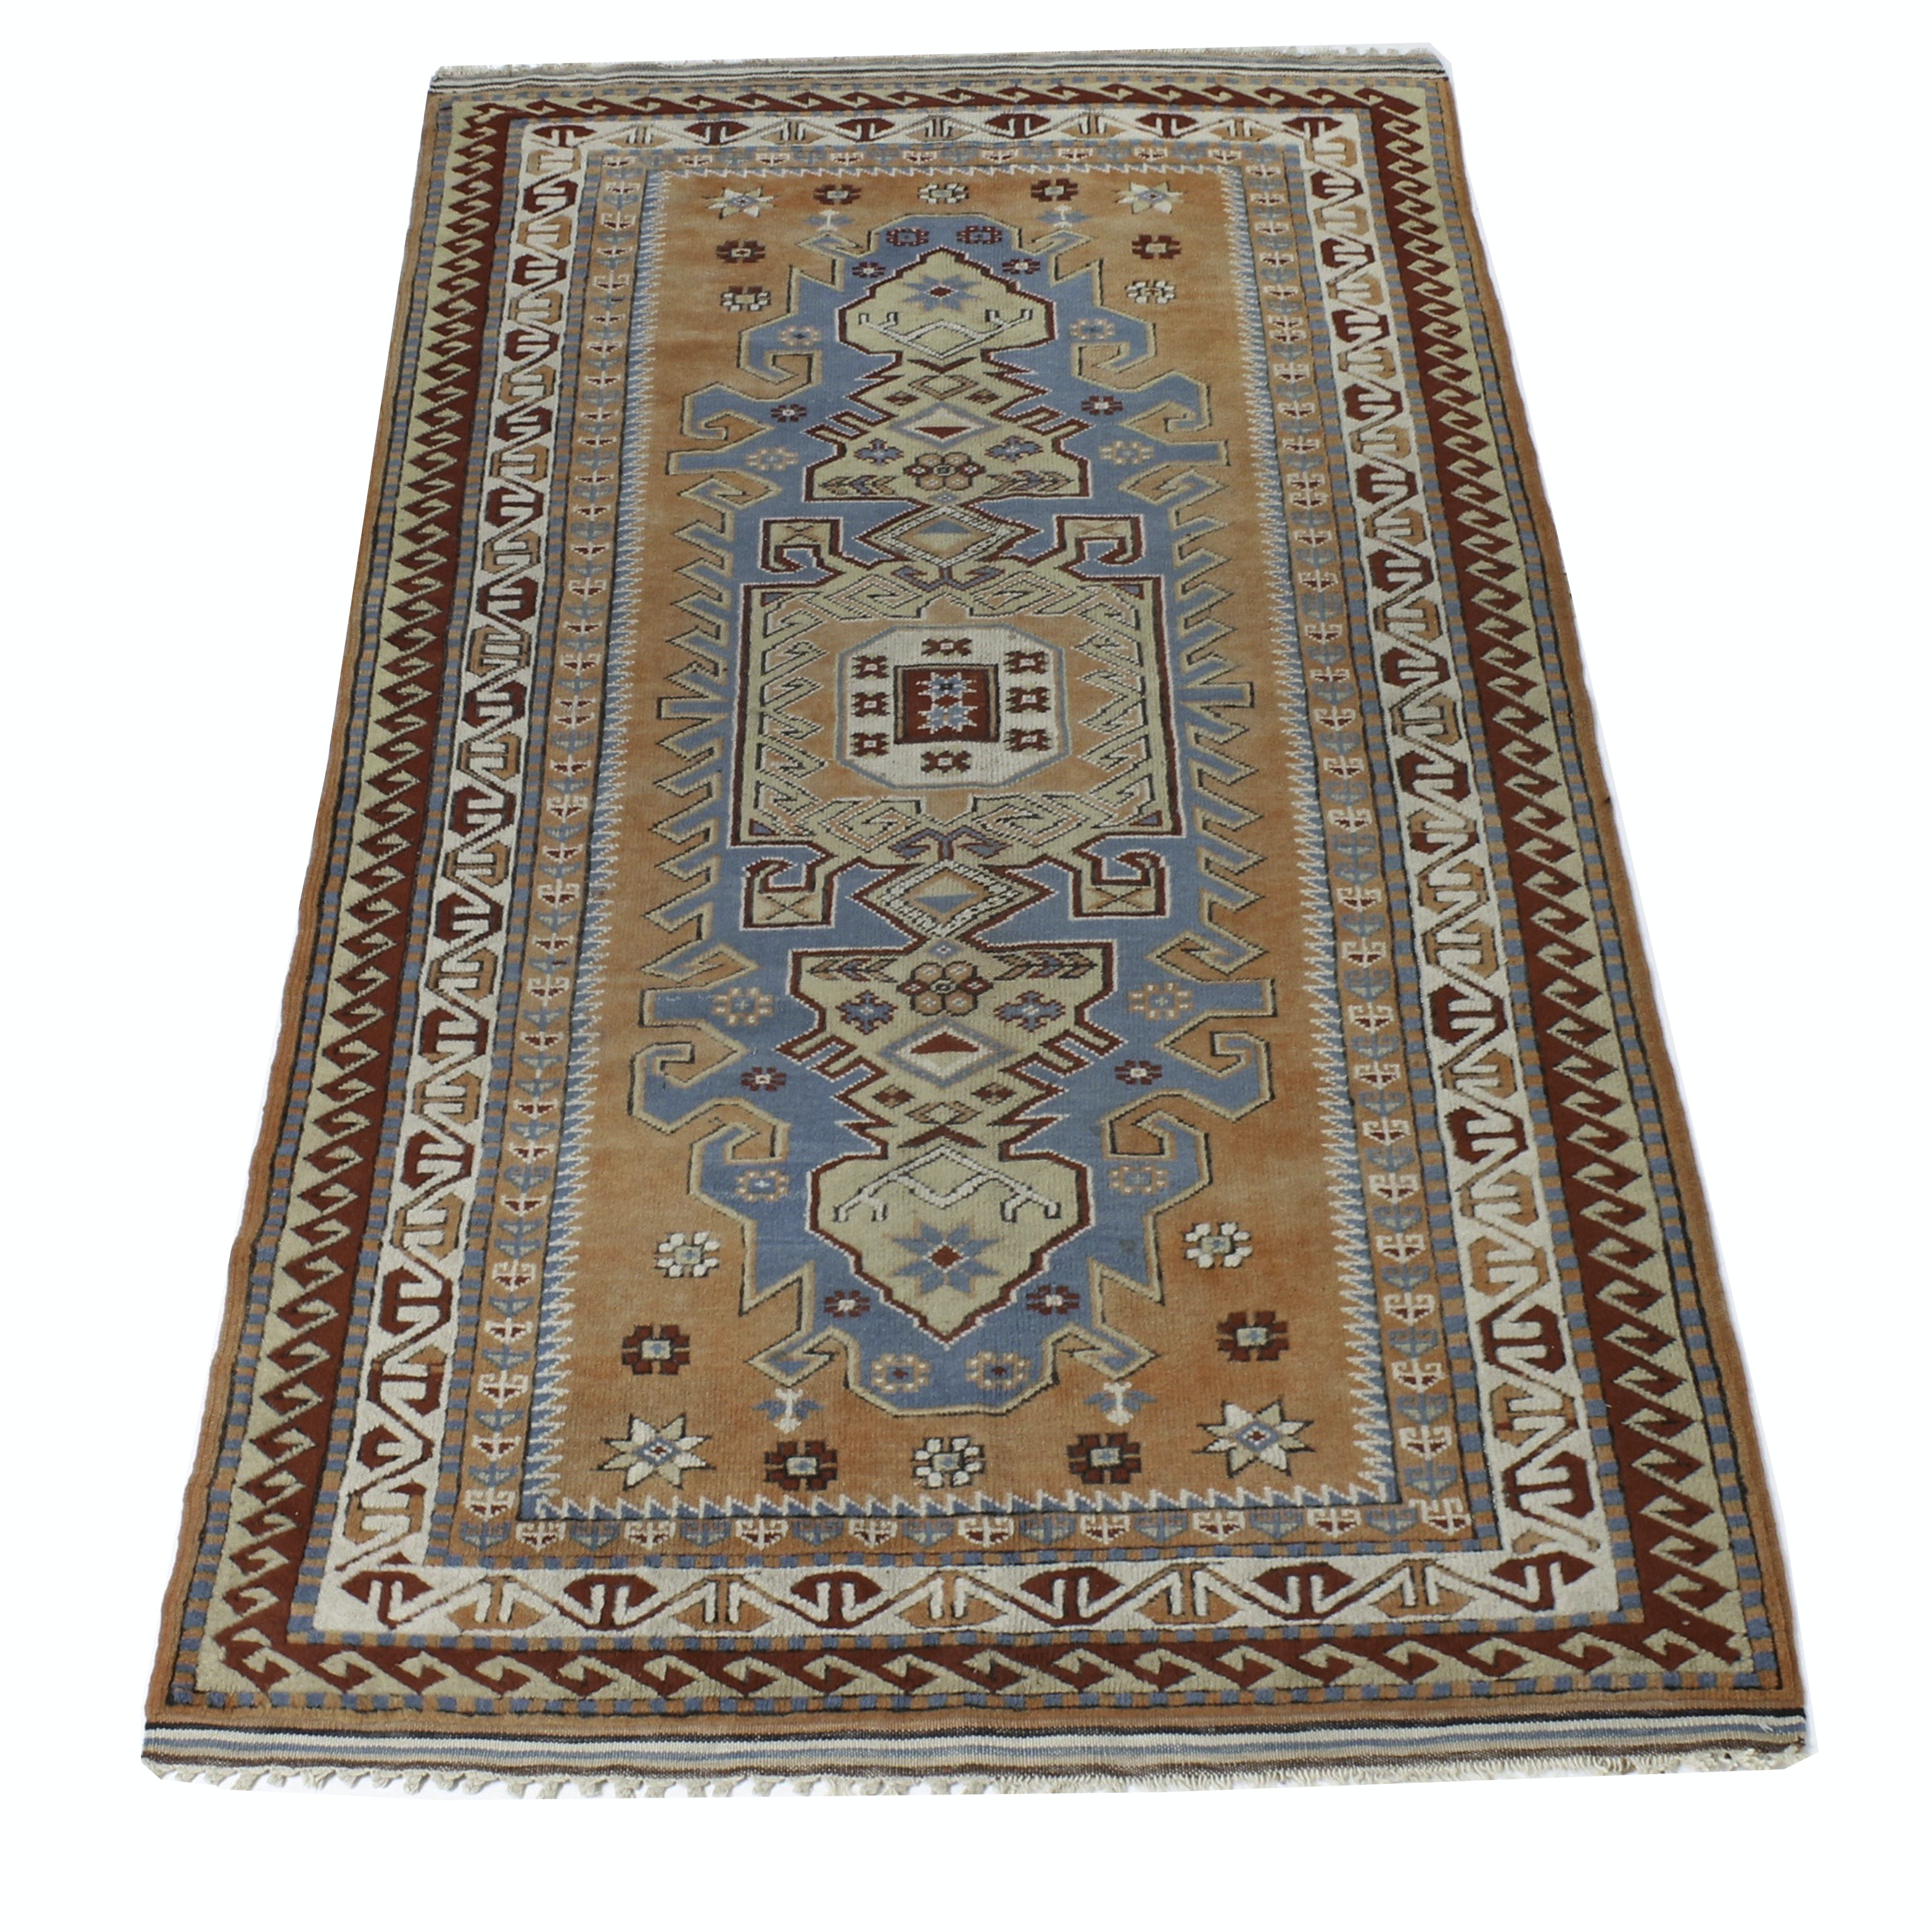 Semi-Antique Hand-Knotted Turkish Caucasian Kazak Area Rug